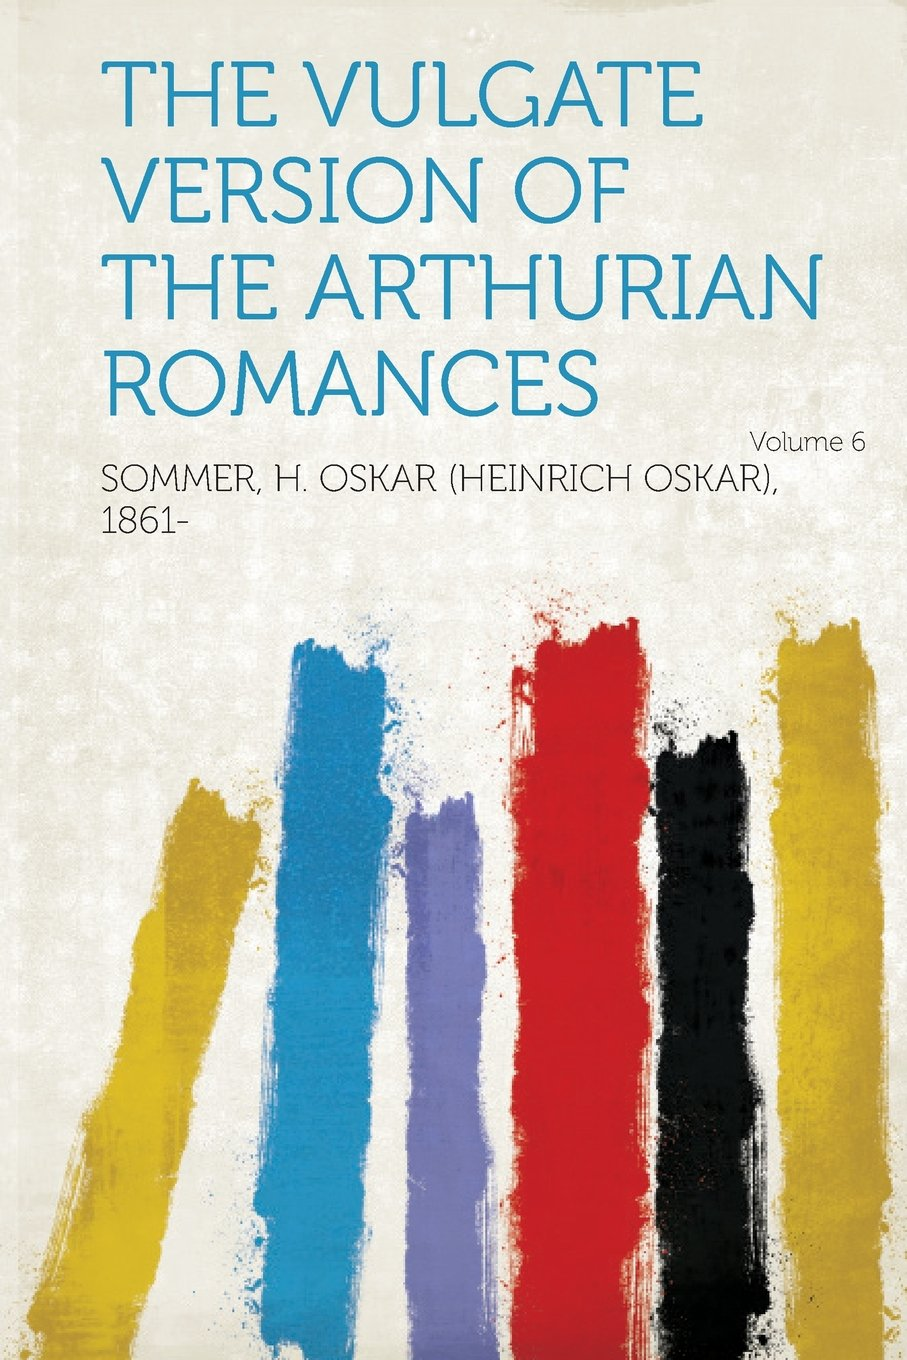 Download The Vulgate Version of the Arthurian Romances Volume 6 PDF